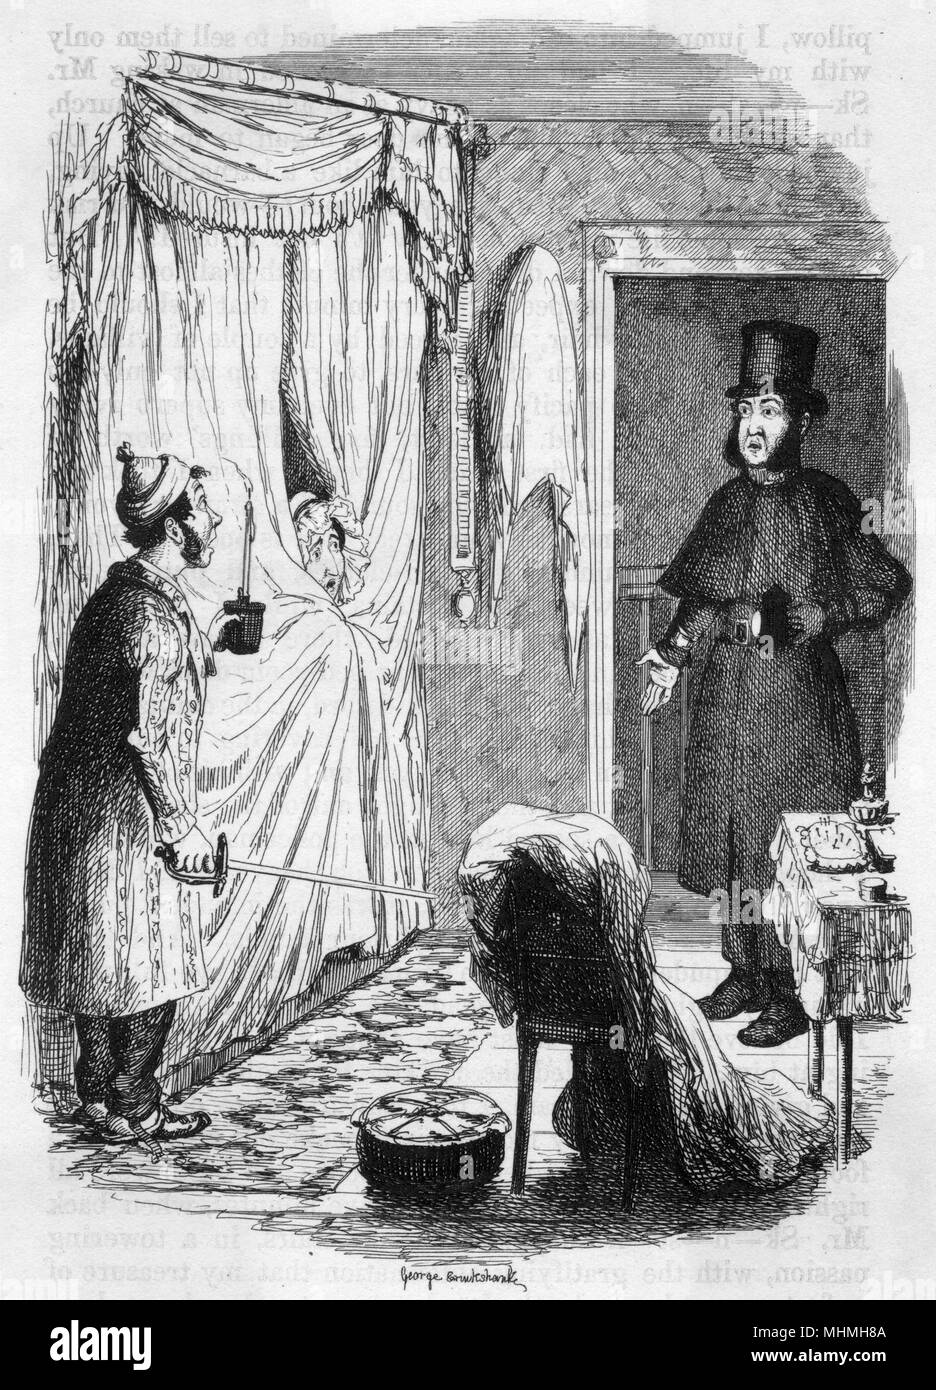 'Do you know as your street- door is open ?' - a policeman on night duty notices servants' carelessness      Date: 1849 - Stock Image